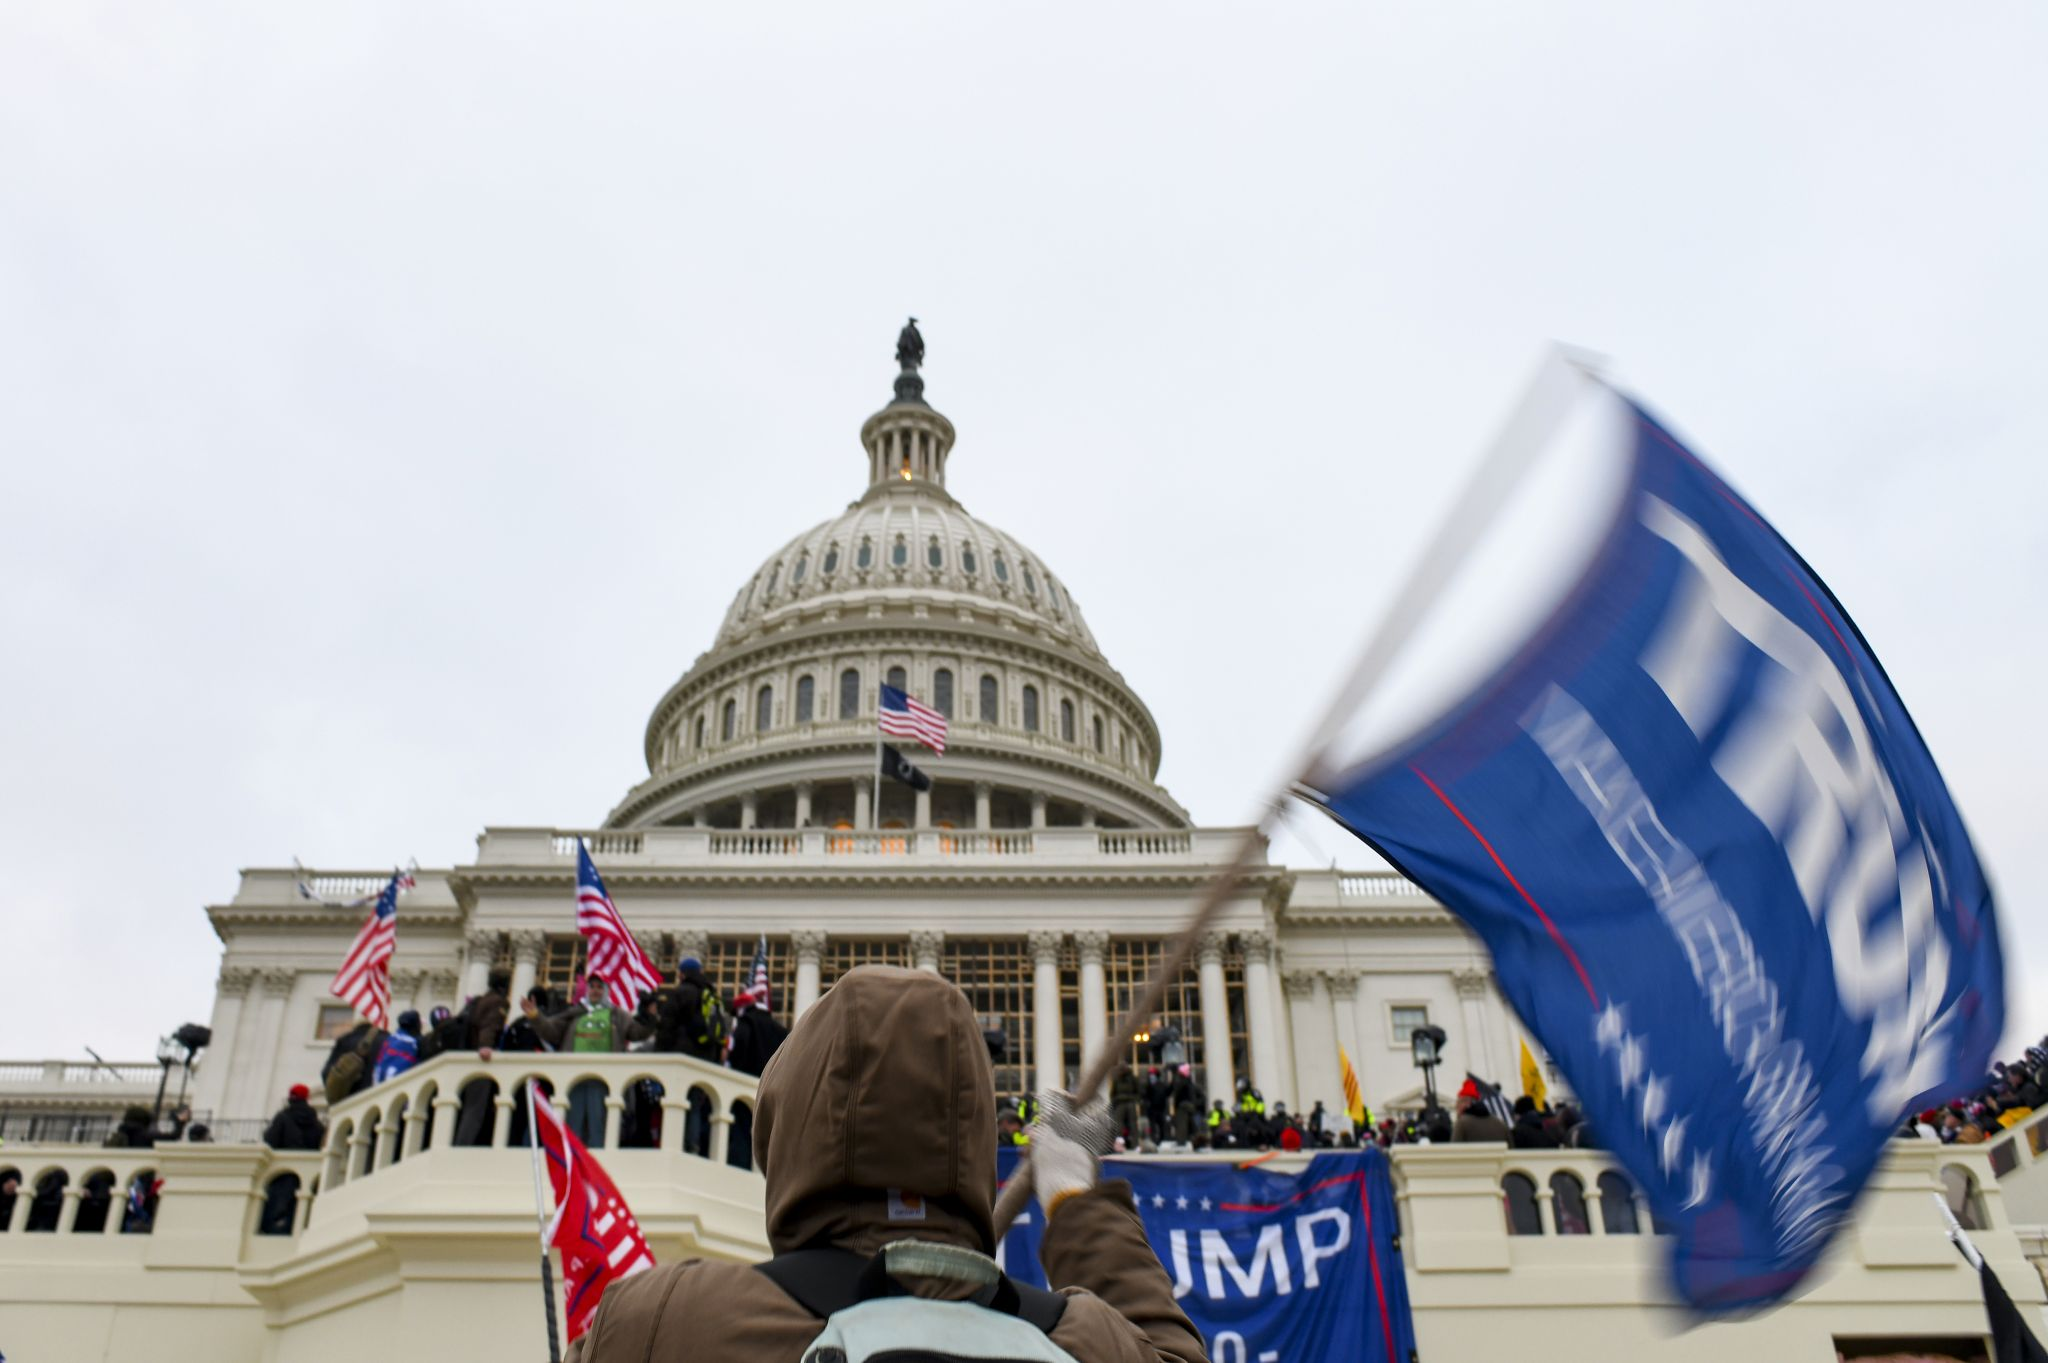 www.houstonchronicle.com: Opinion: Why the flag of South Vietnam flew at U.S. Capitol siege